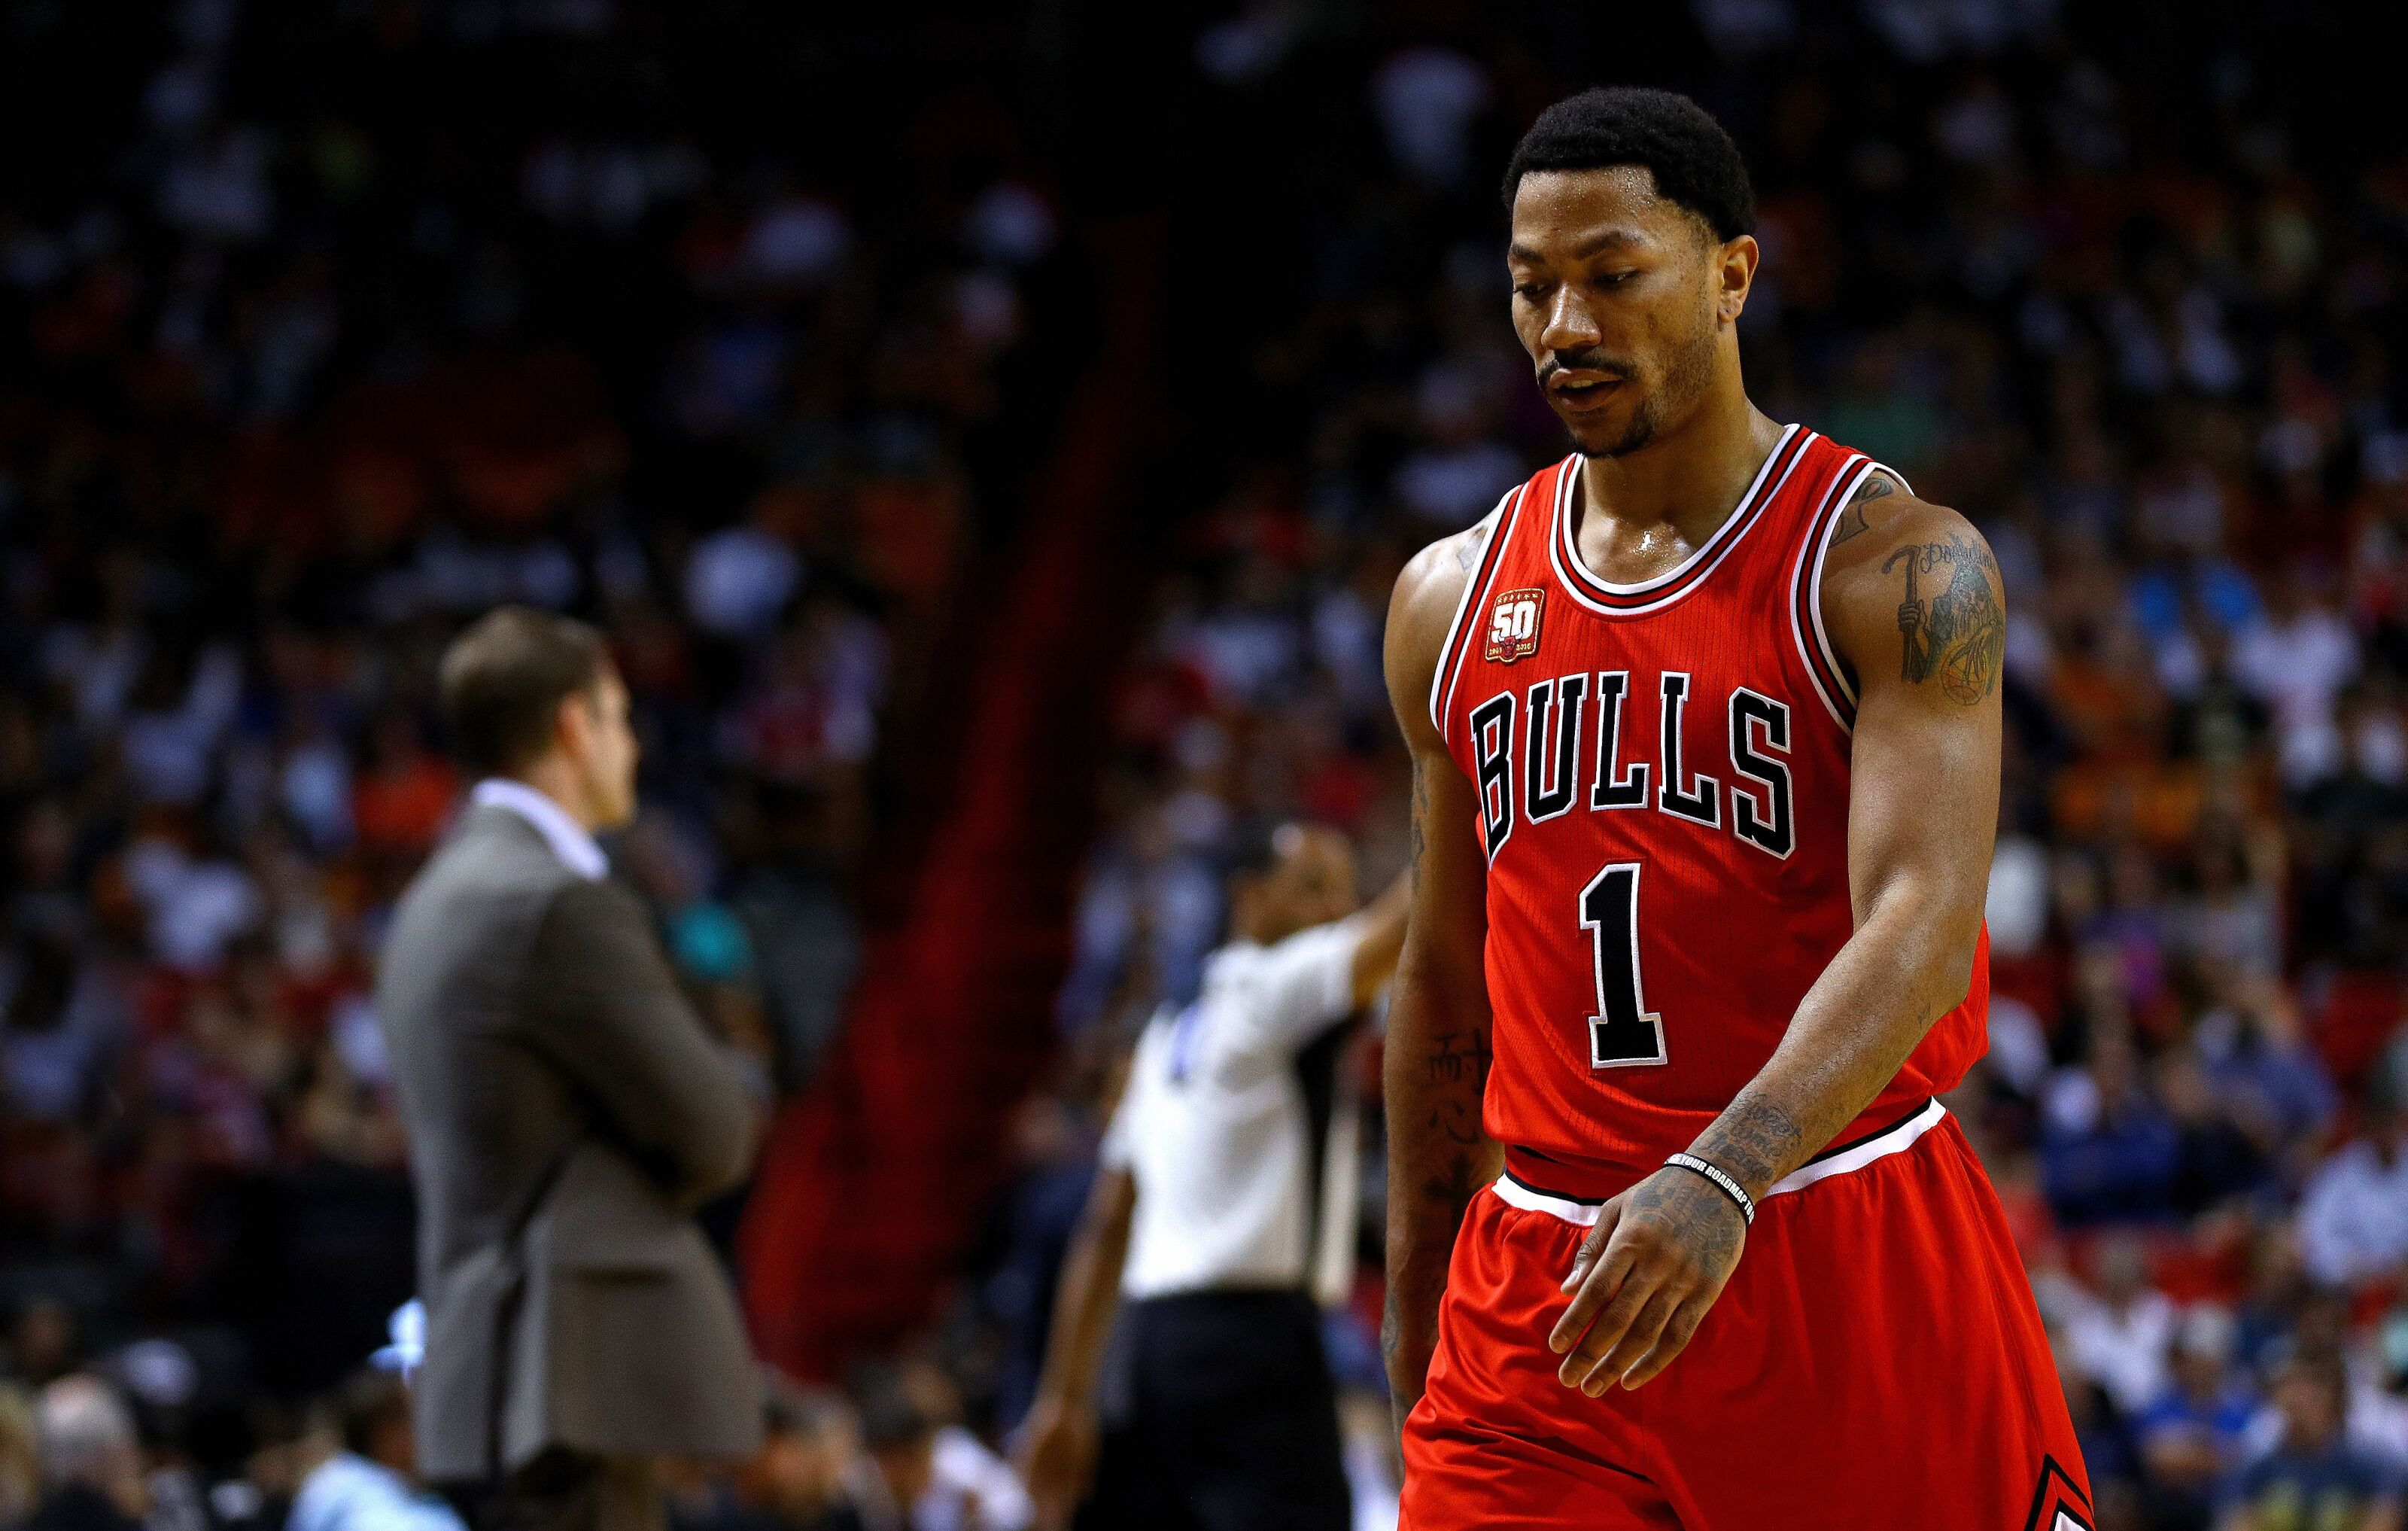 625ae5748b93 Chicago Bulls and Derrick Rose reunion  Does it make sense